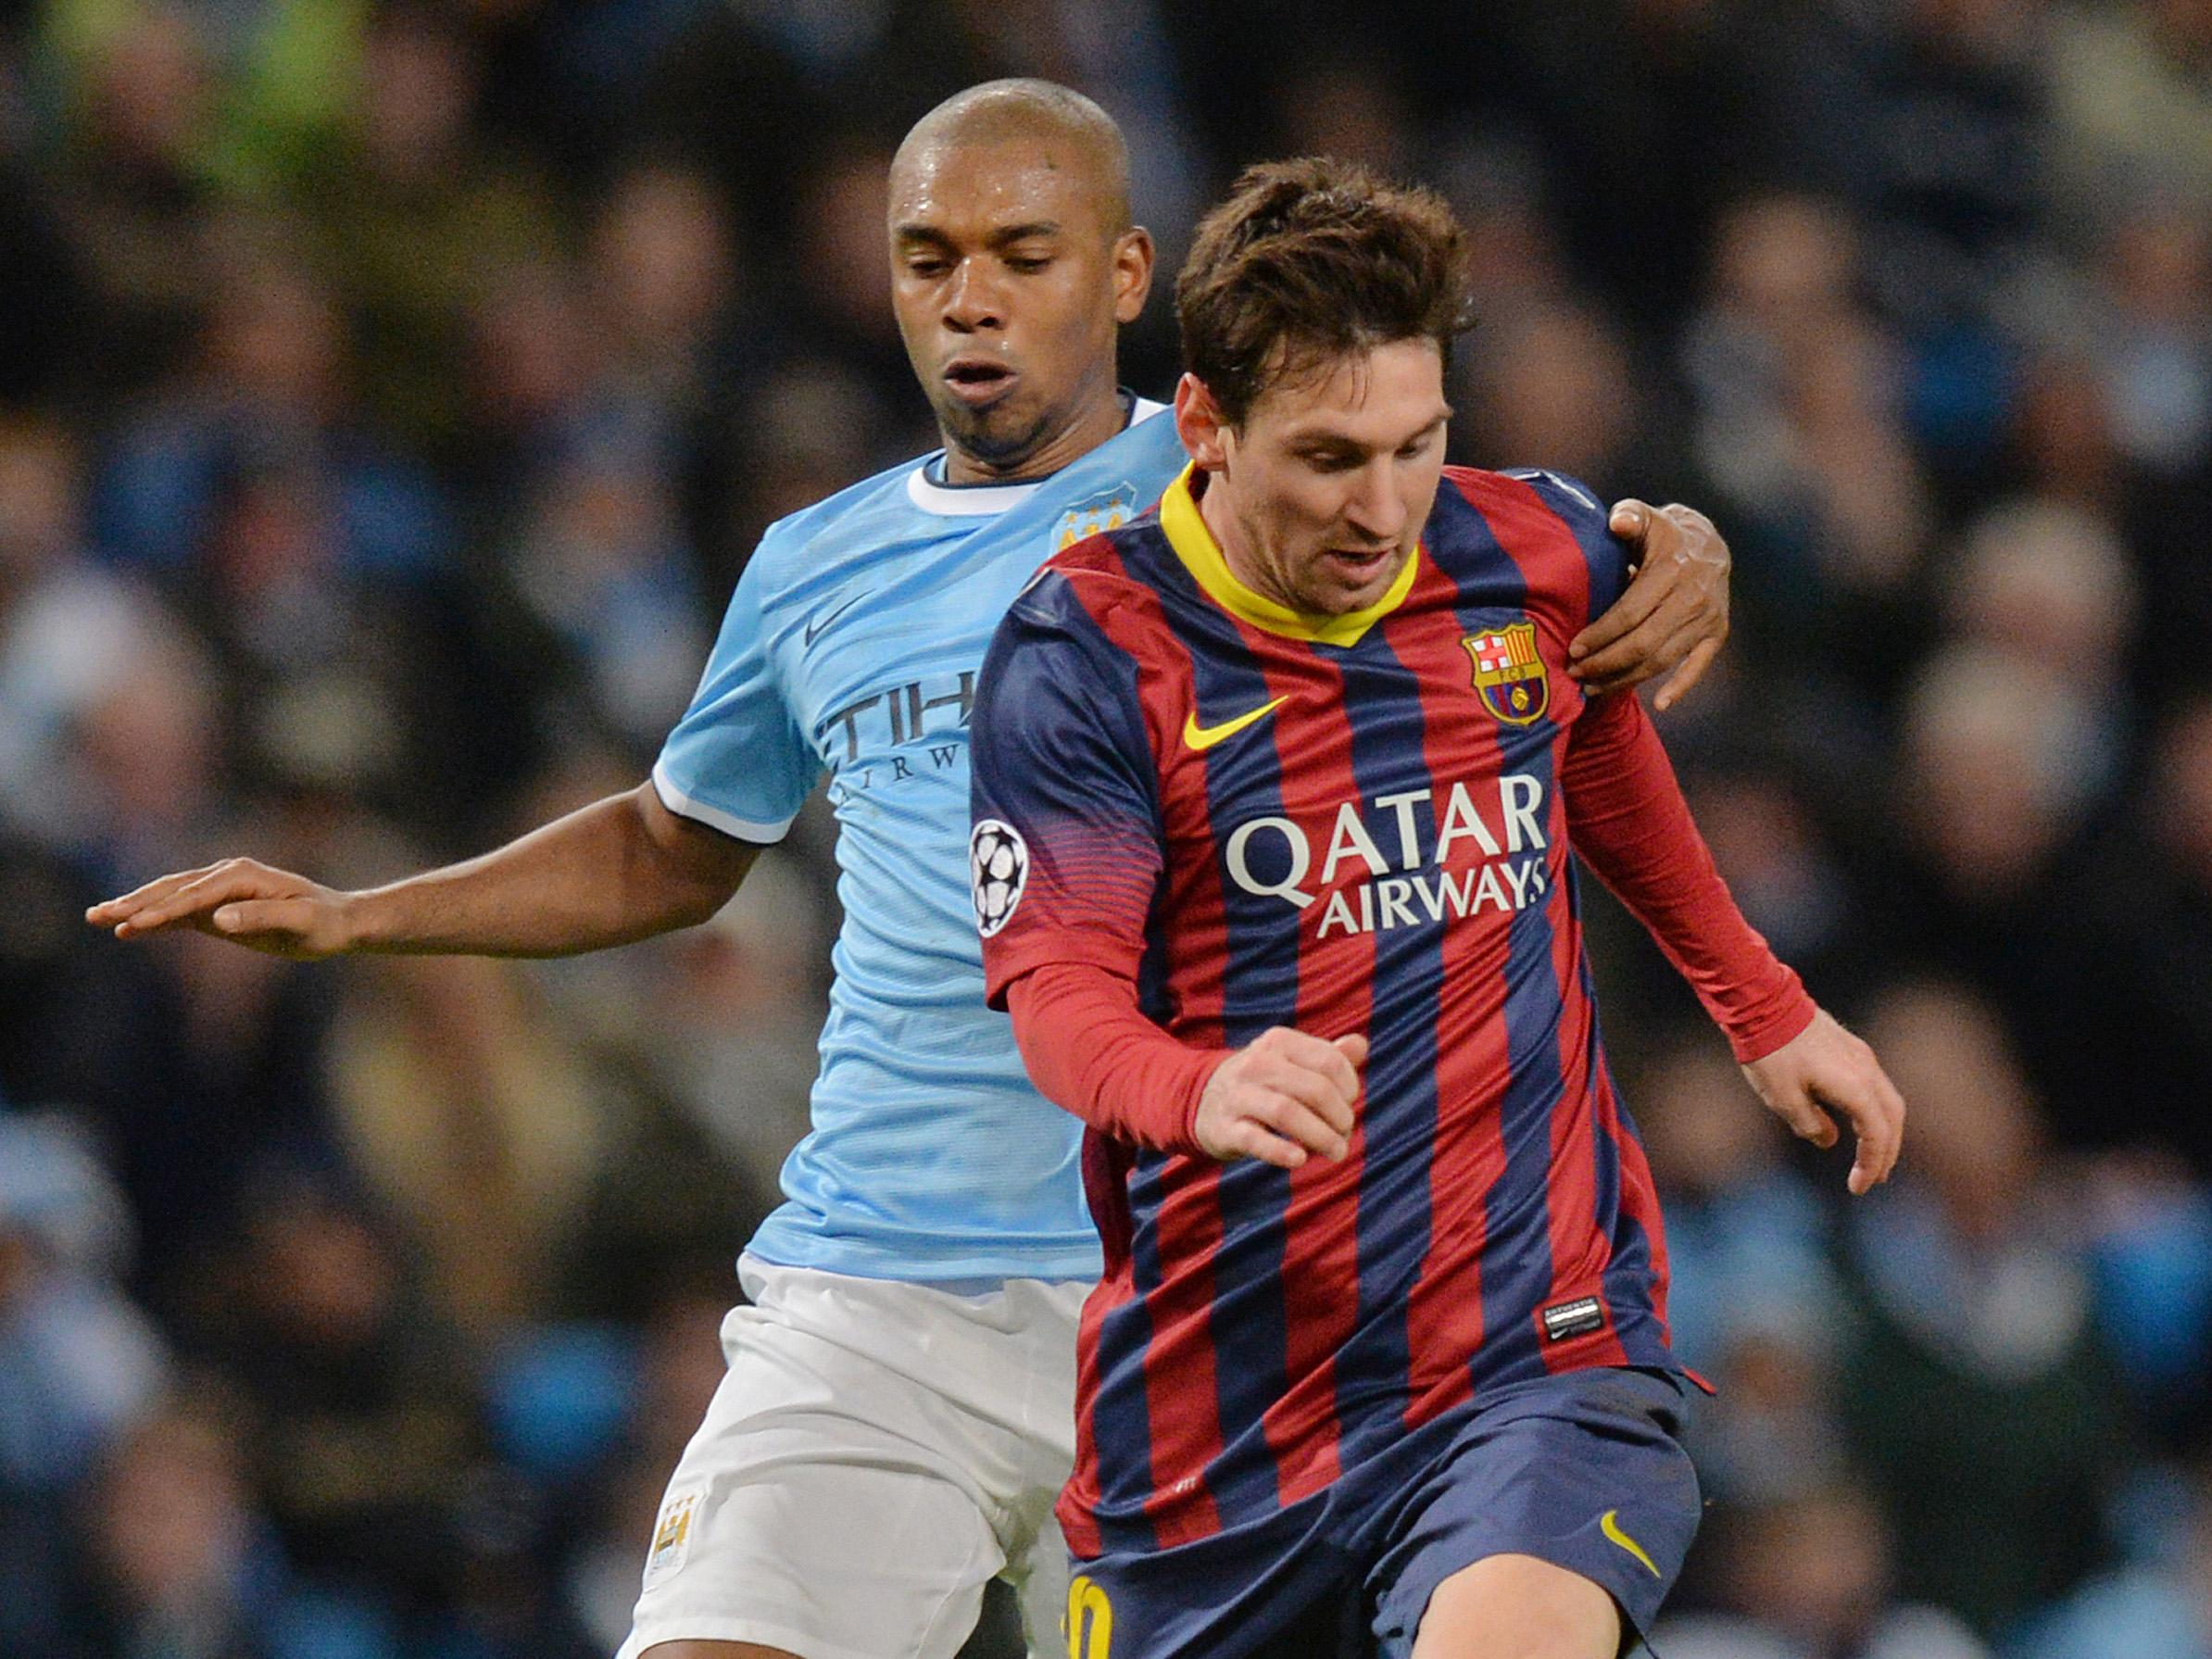 Manchester City urged not to sign Barcelona star Lionel Messi by